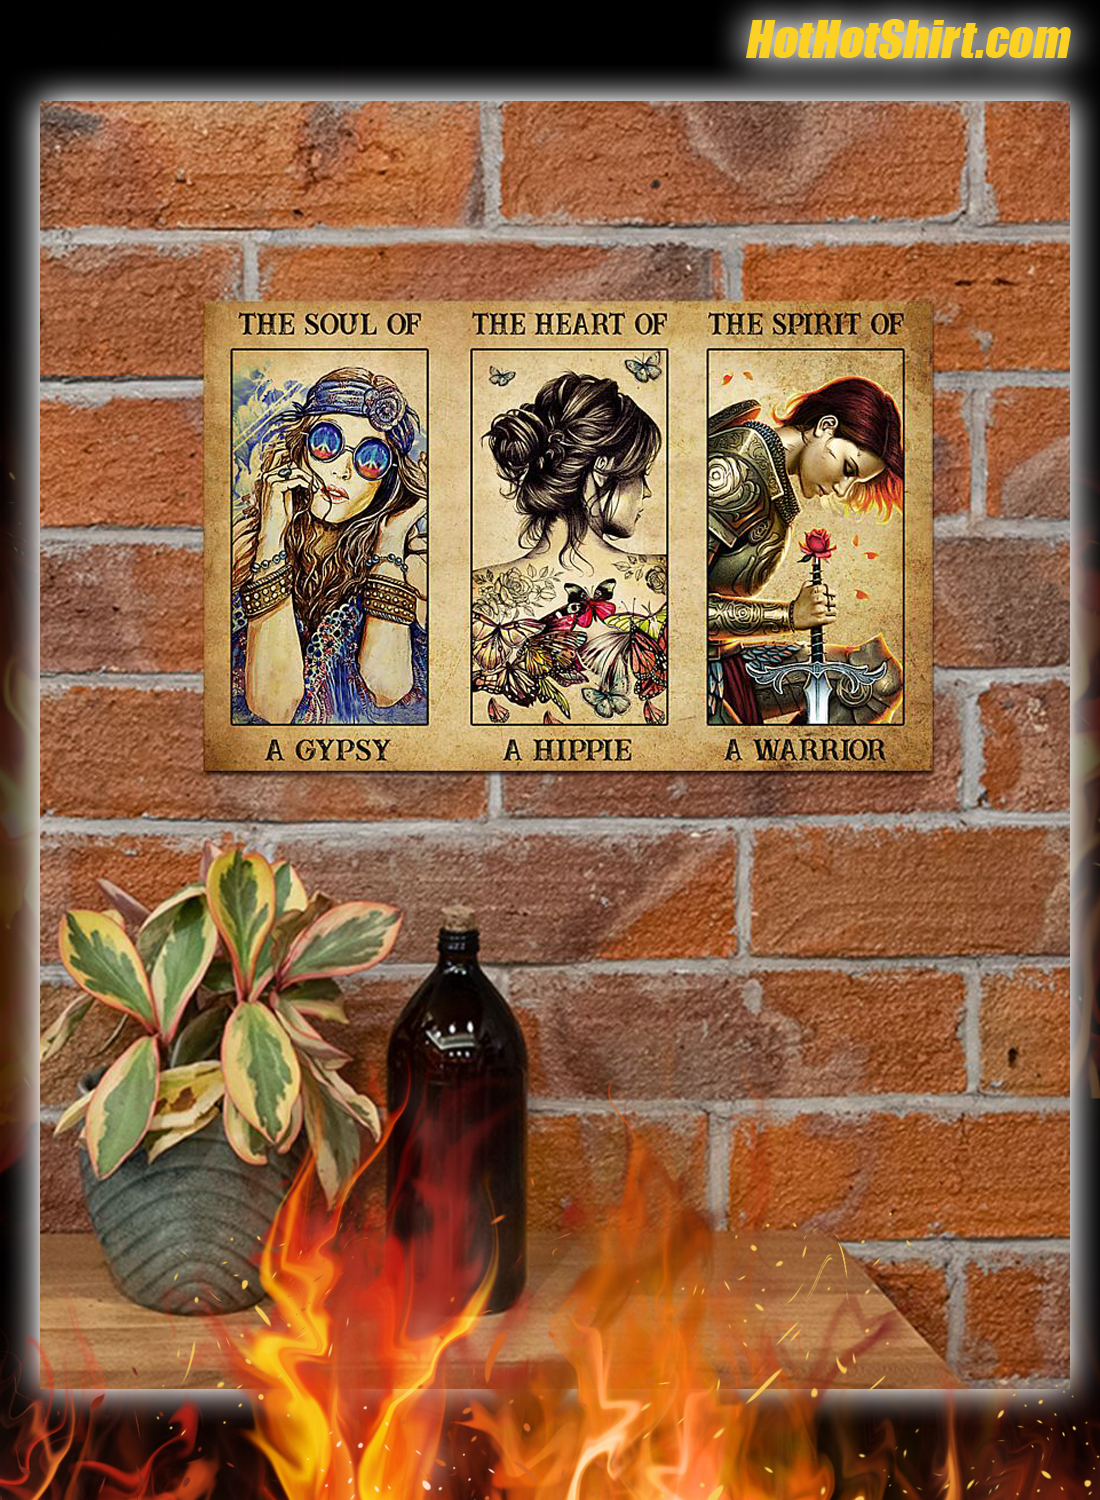 The soul of a gypsy the heart of a hippie the spirit of a warrior poster 3